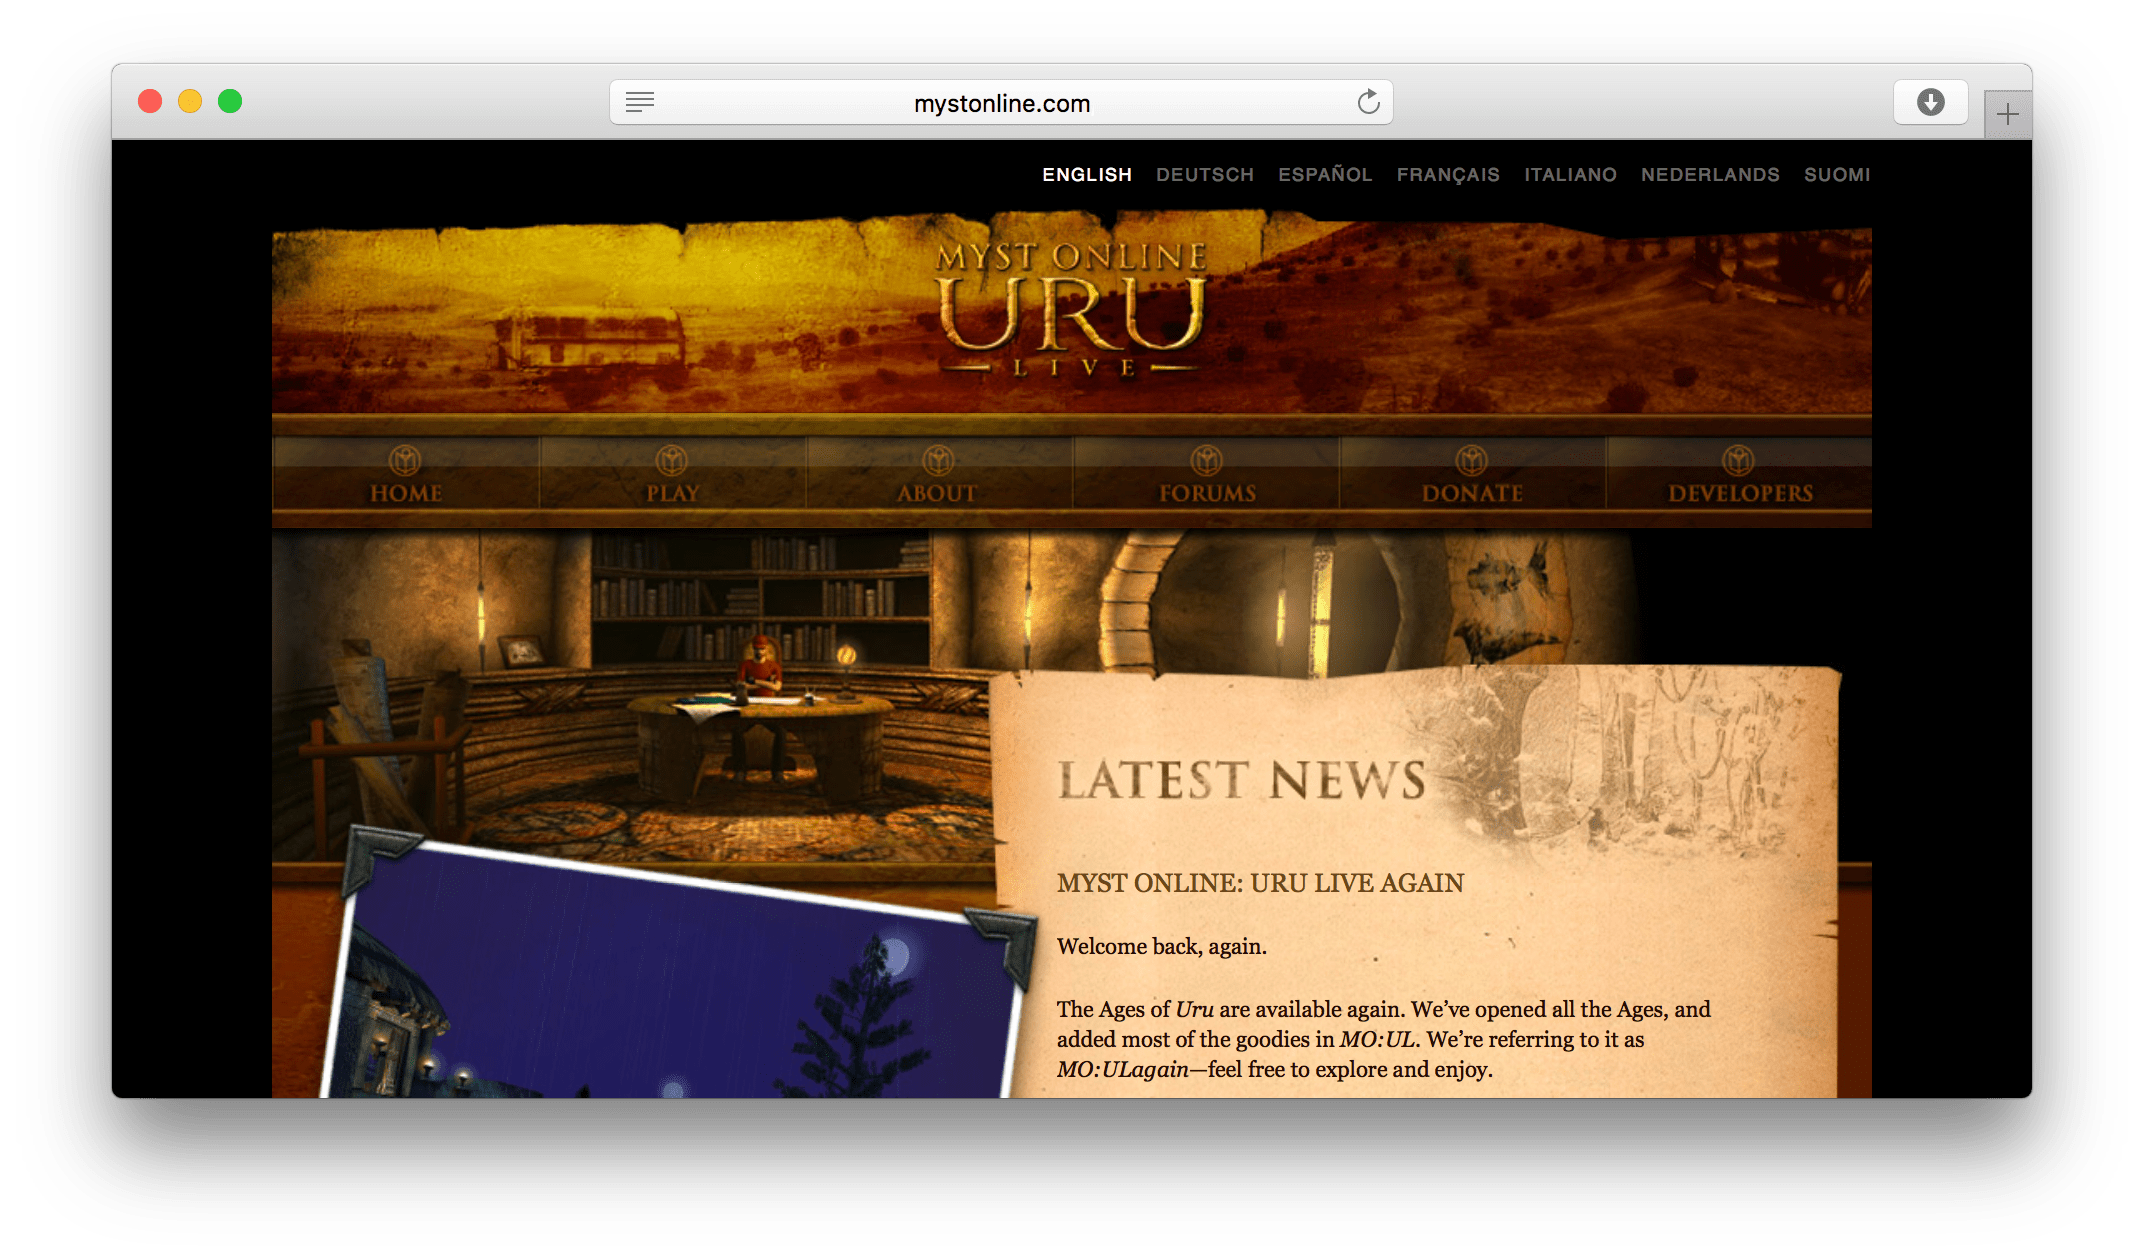 Myst Online website screenshot